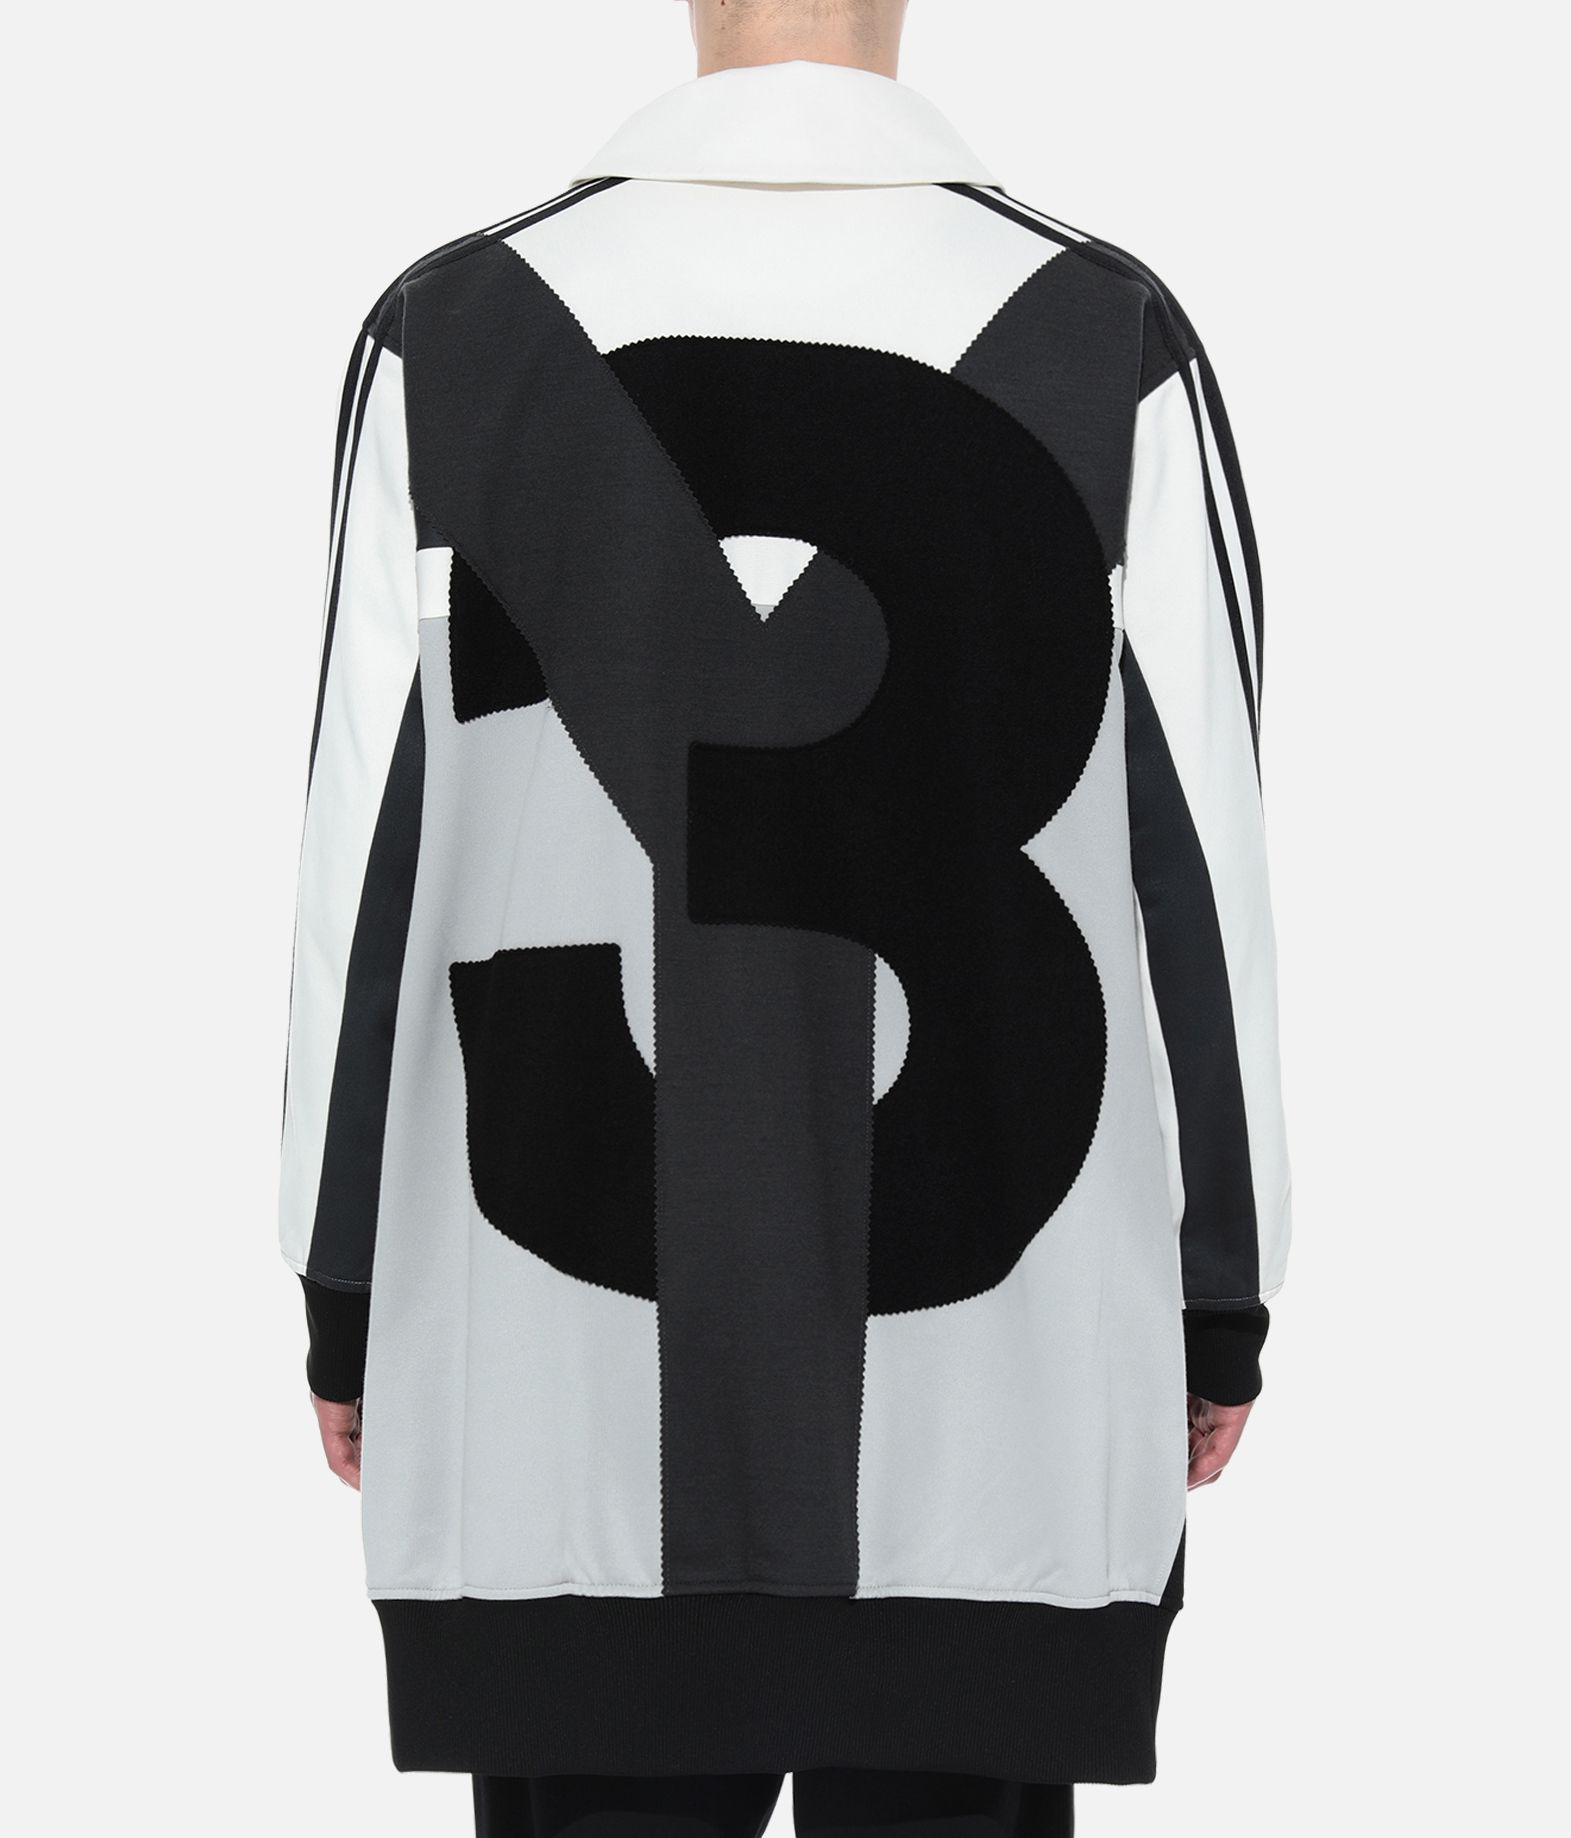 Y-3 Y-3 OVERSIZED GRAPHIC TRACK TOP Track top Herr d